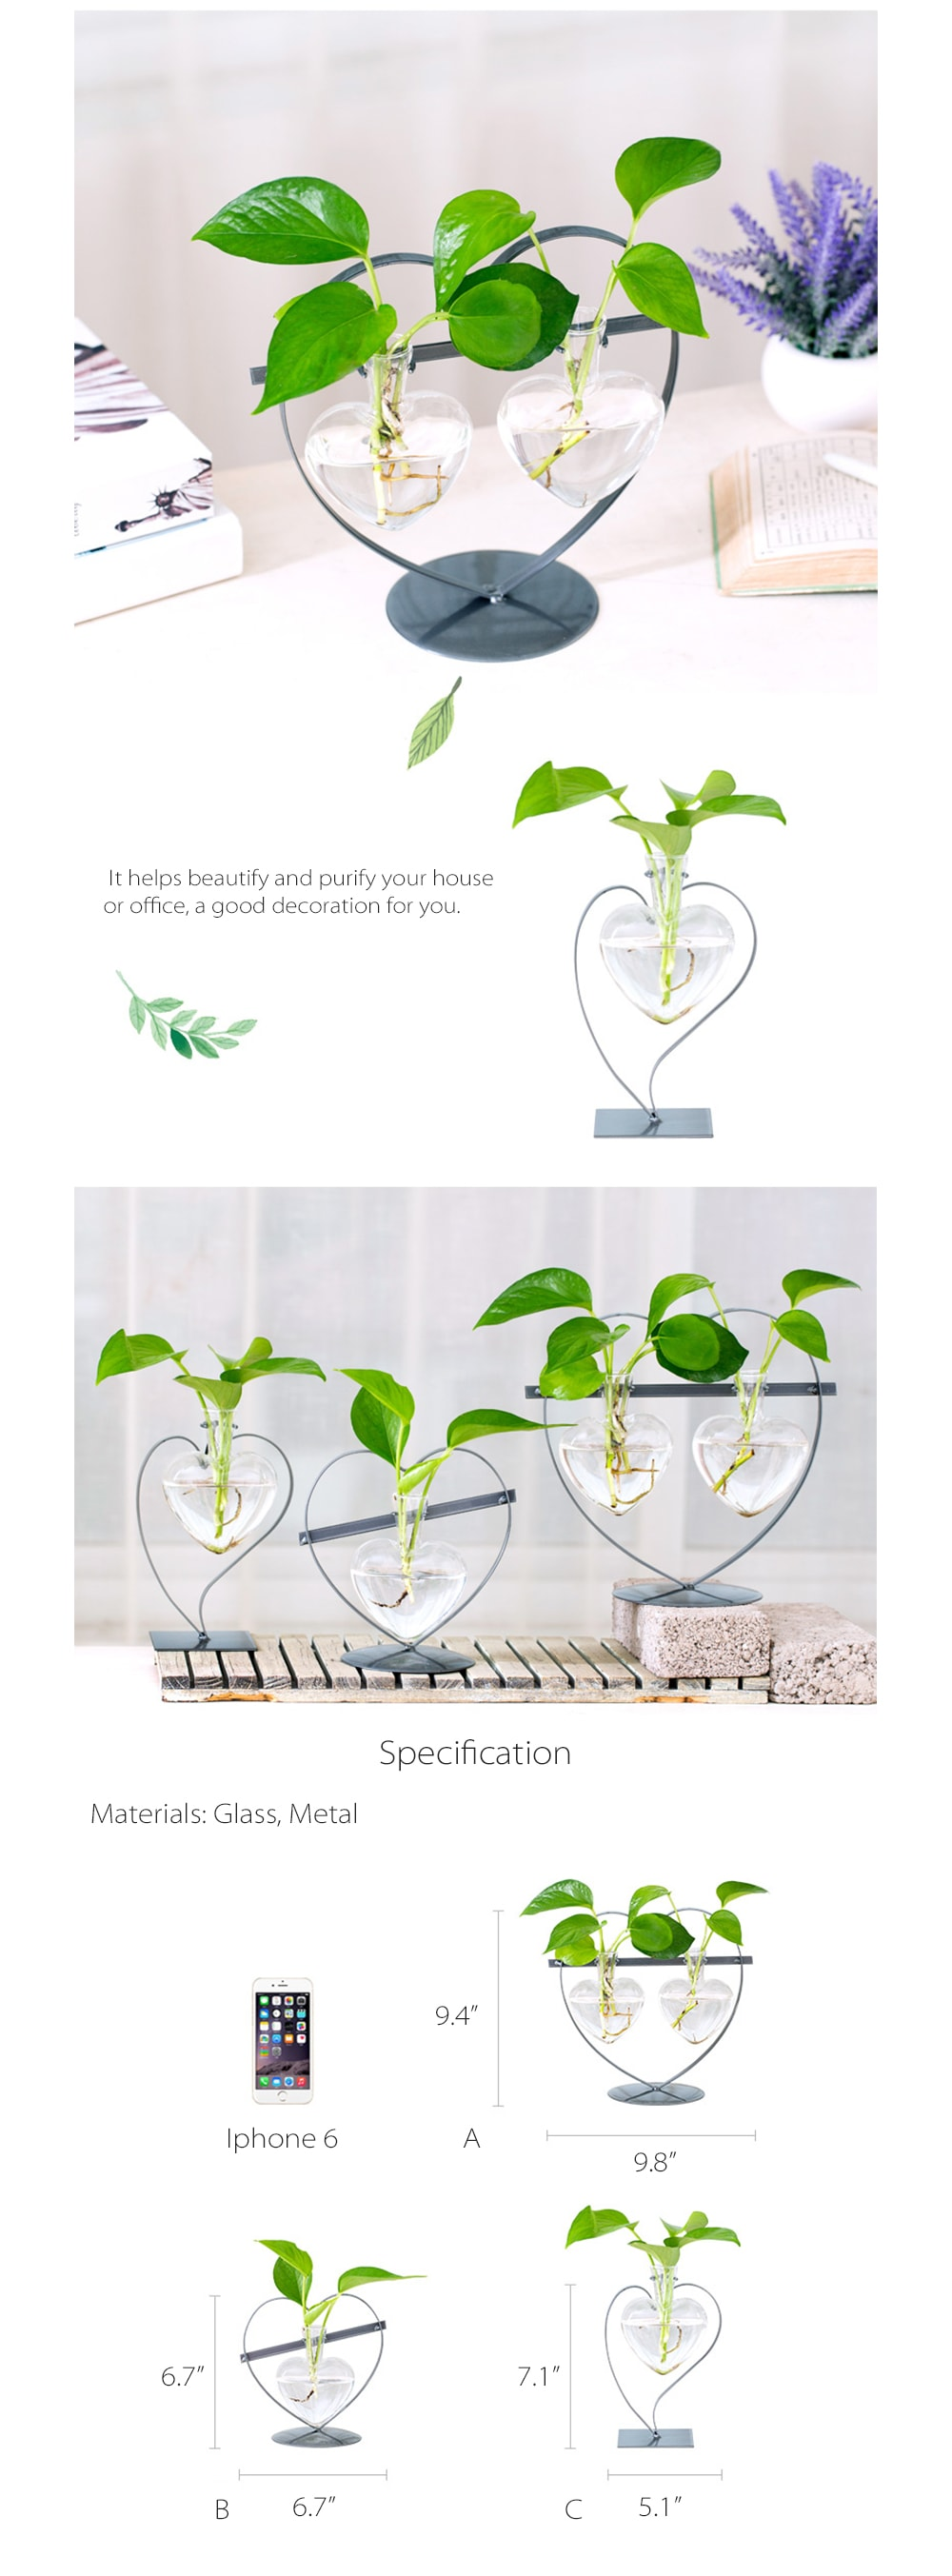 Heart Shaped Glass Vase with Metal Stand Stylish Hydroponic Vases